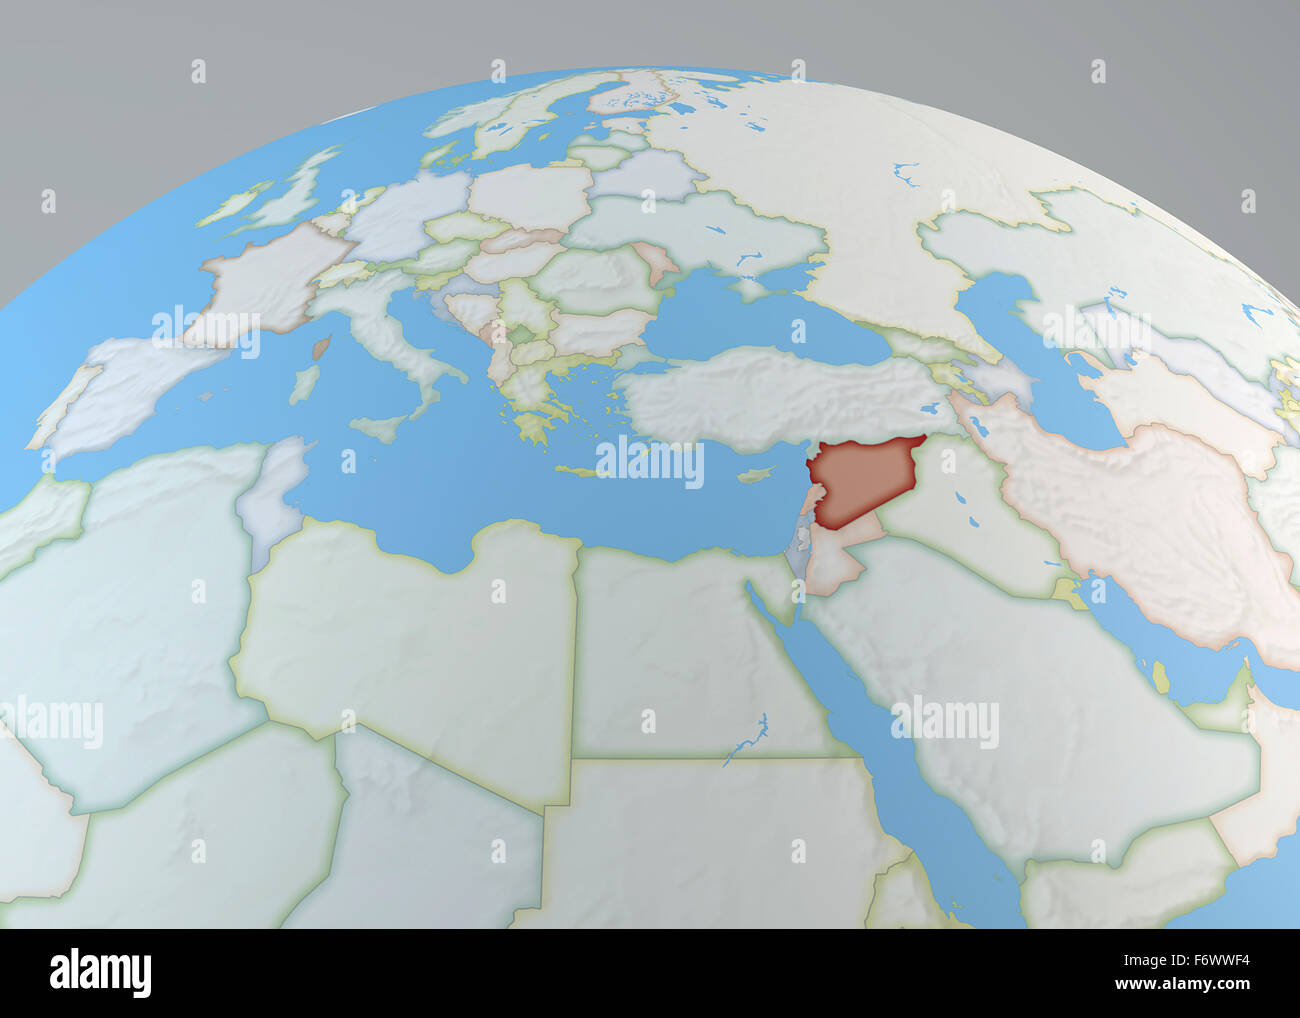 north africa map syria